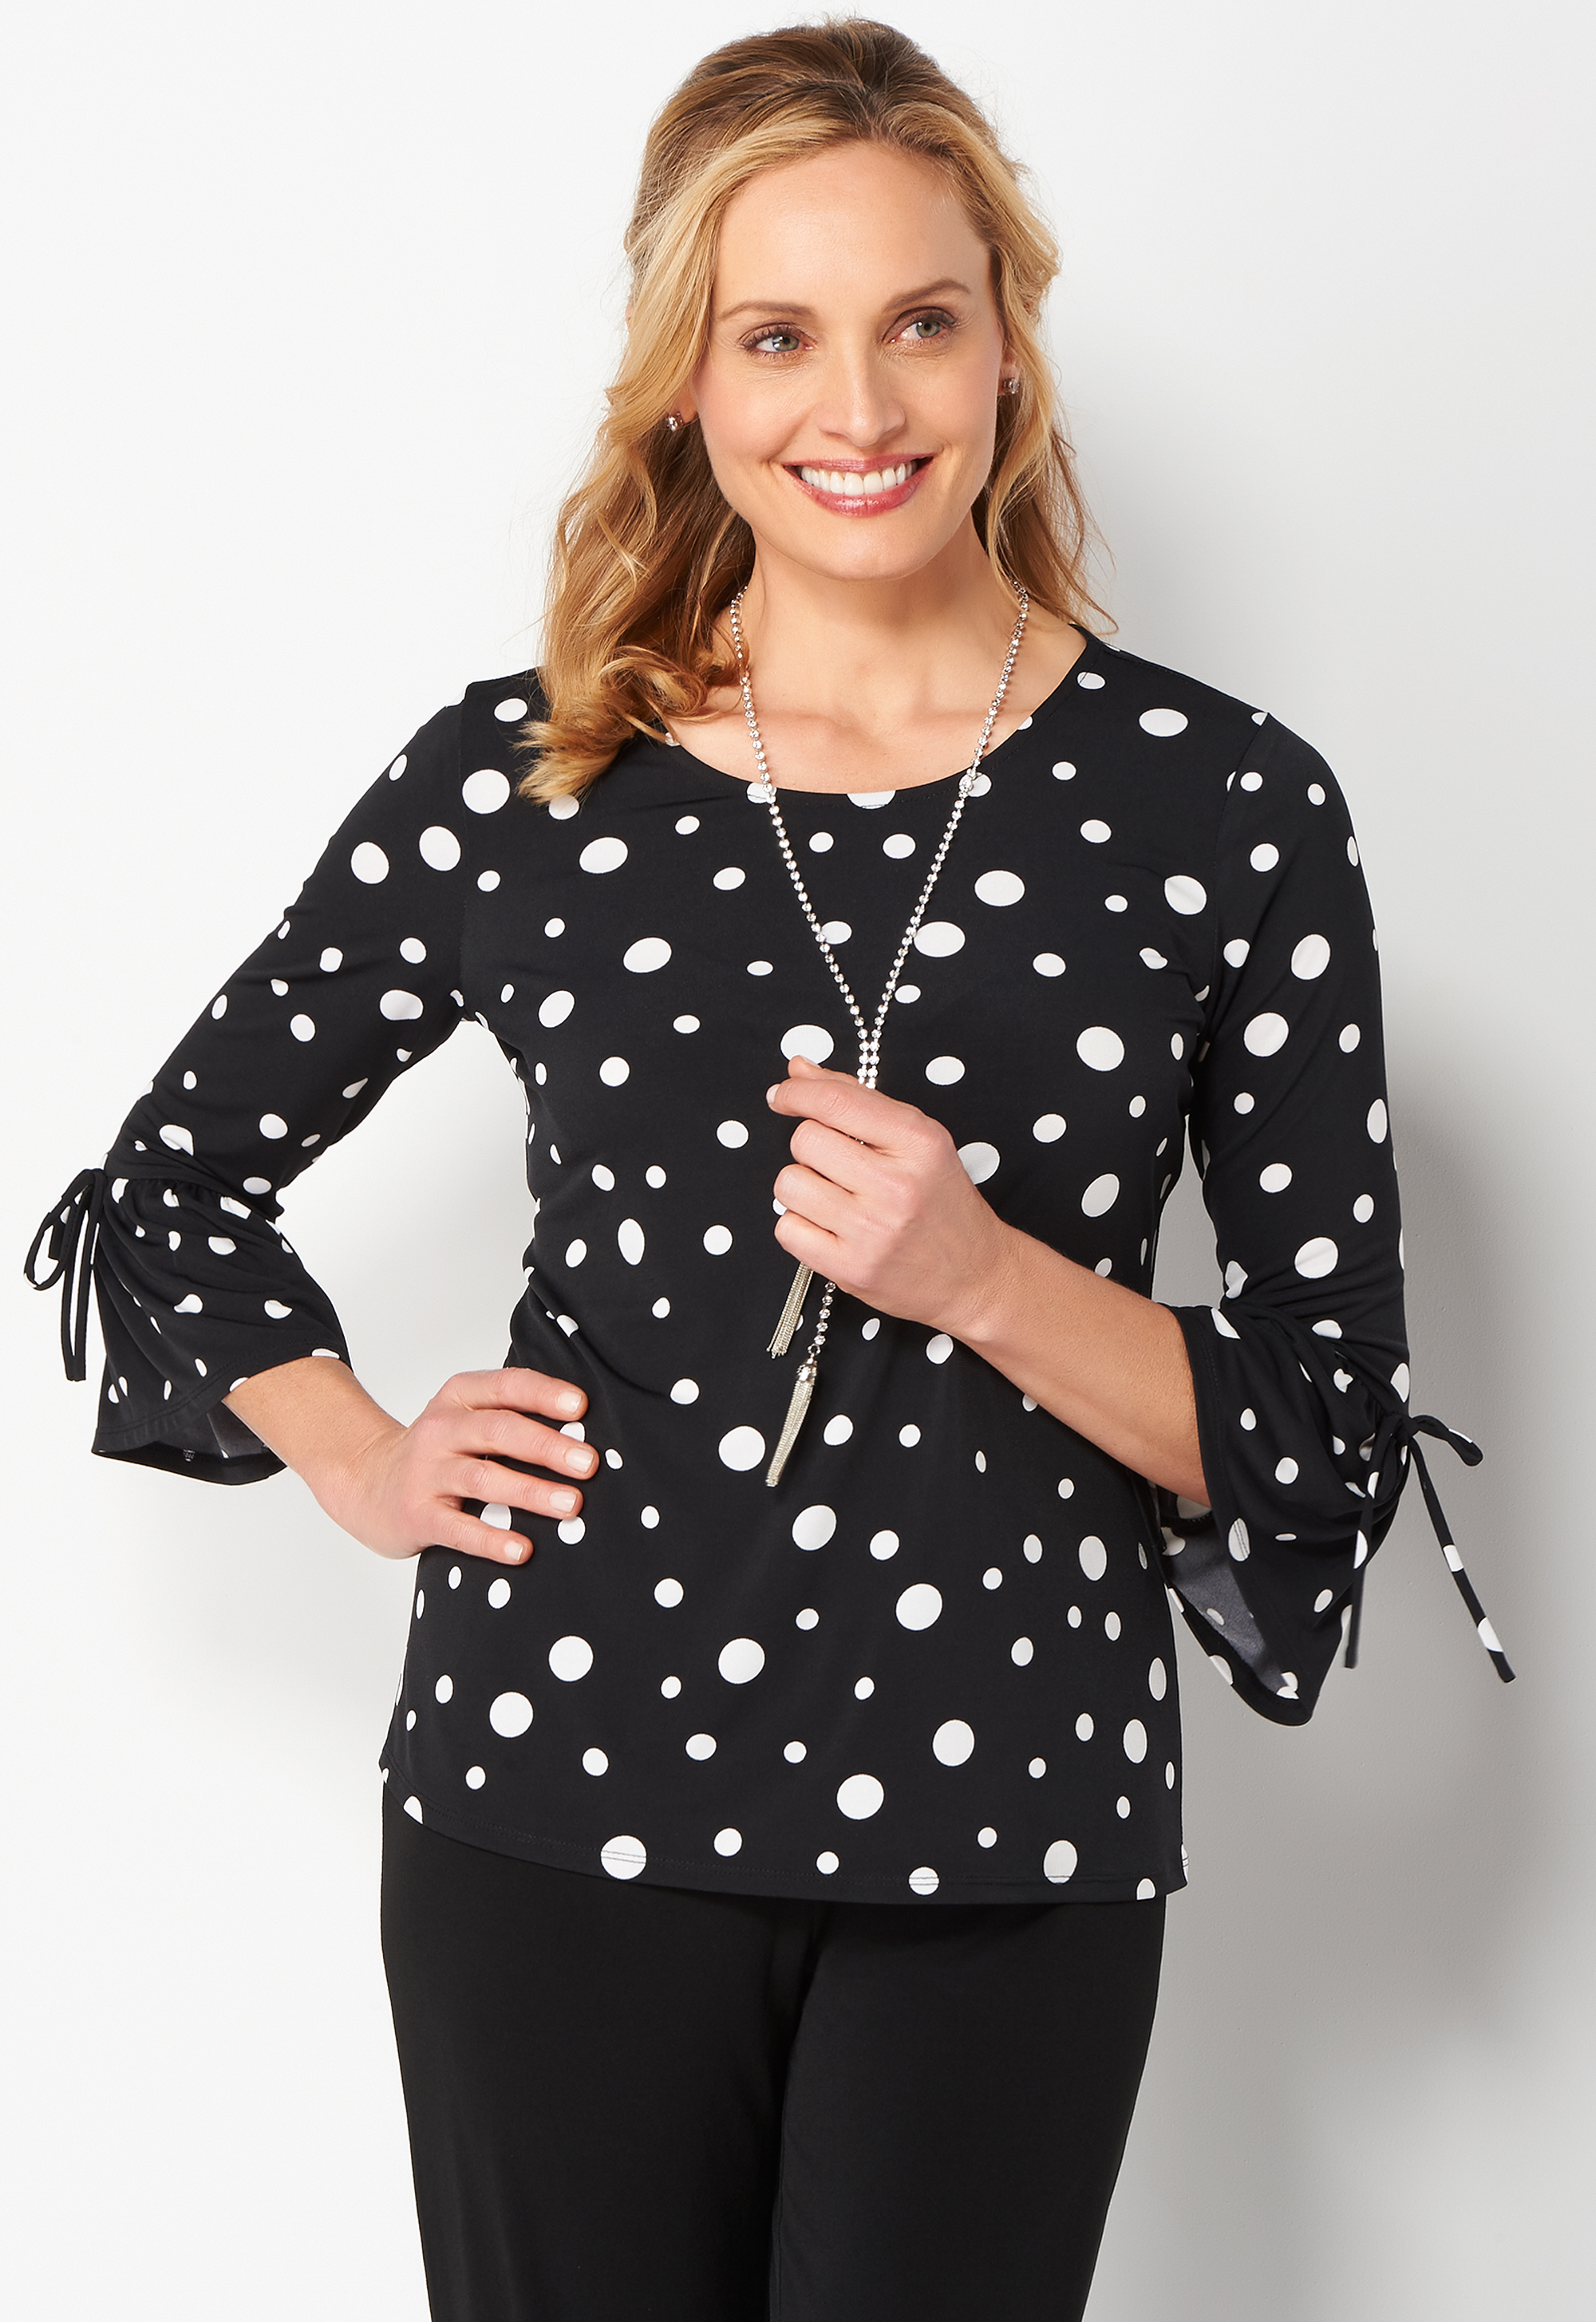 Vintage & Retro Shirts, Halter Tops, Blouses Easy Wear Polka Dot Bell Sleeve Top - BlackWhite - Christopher  Banks $44.95 AT vintagedancer.com